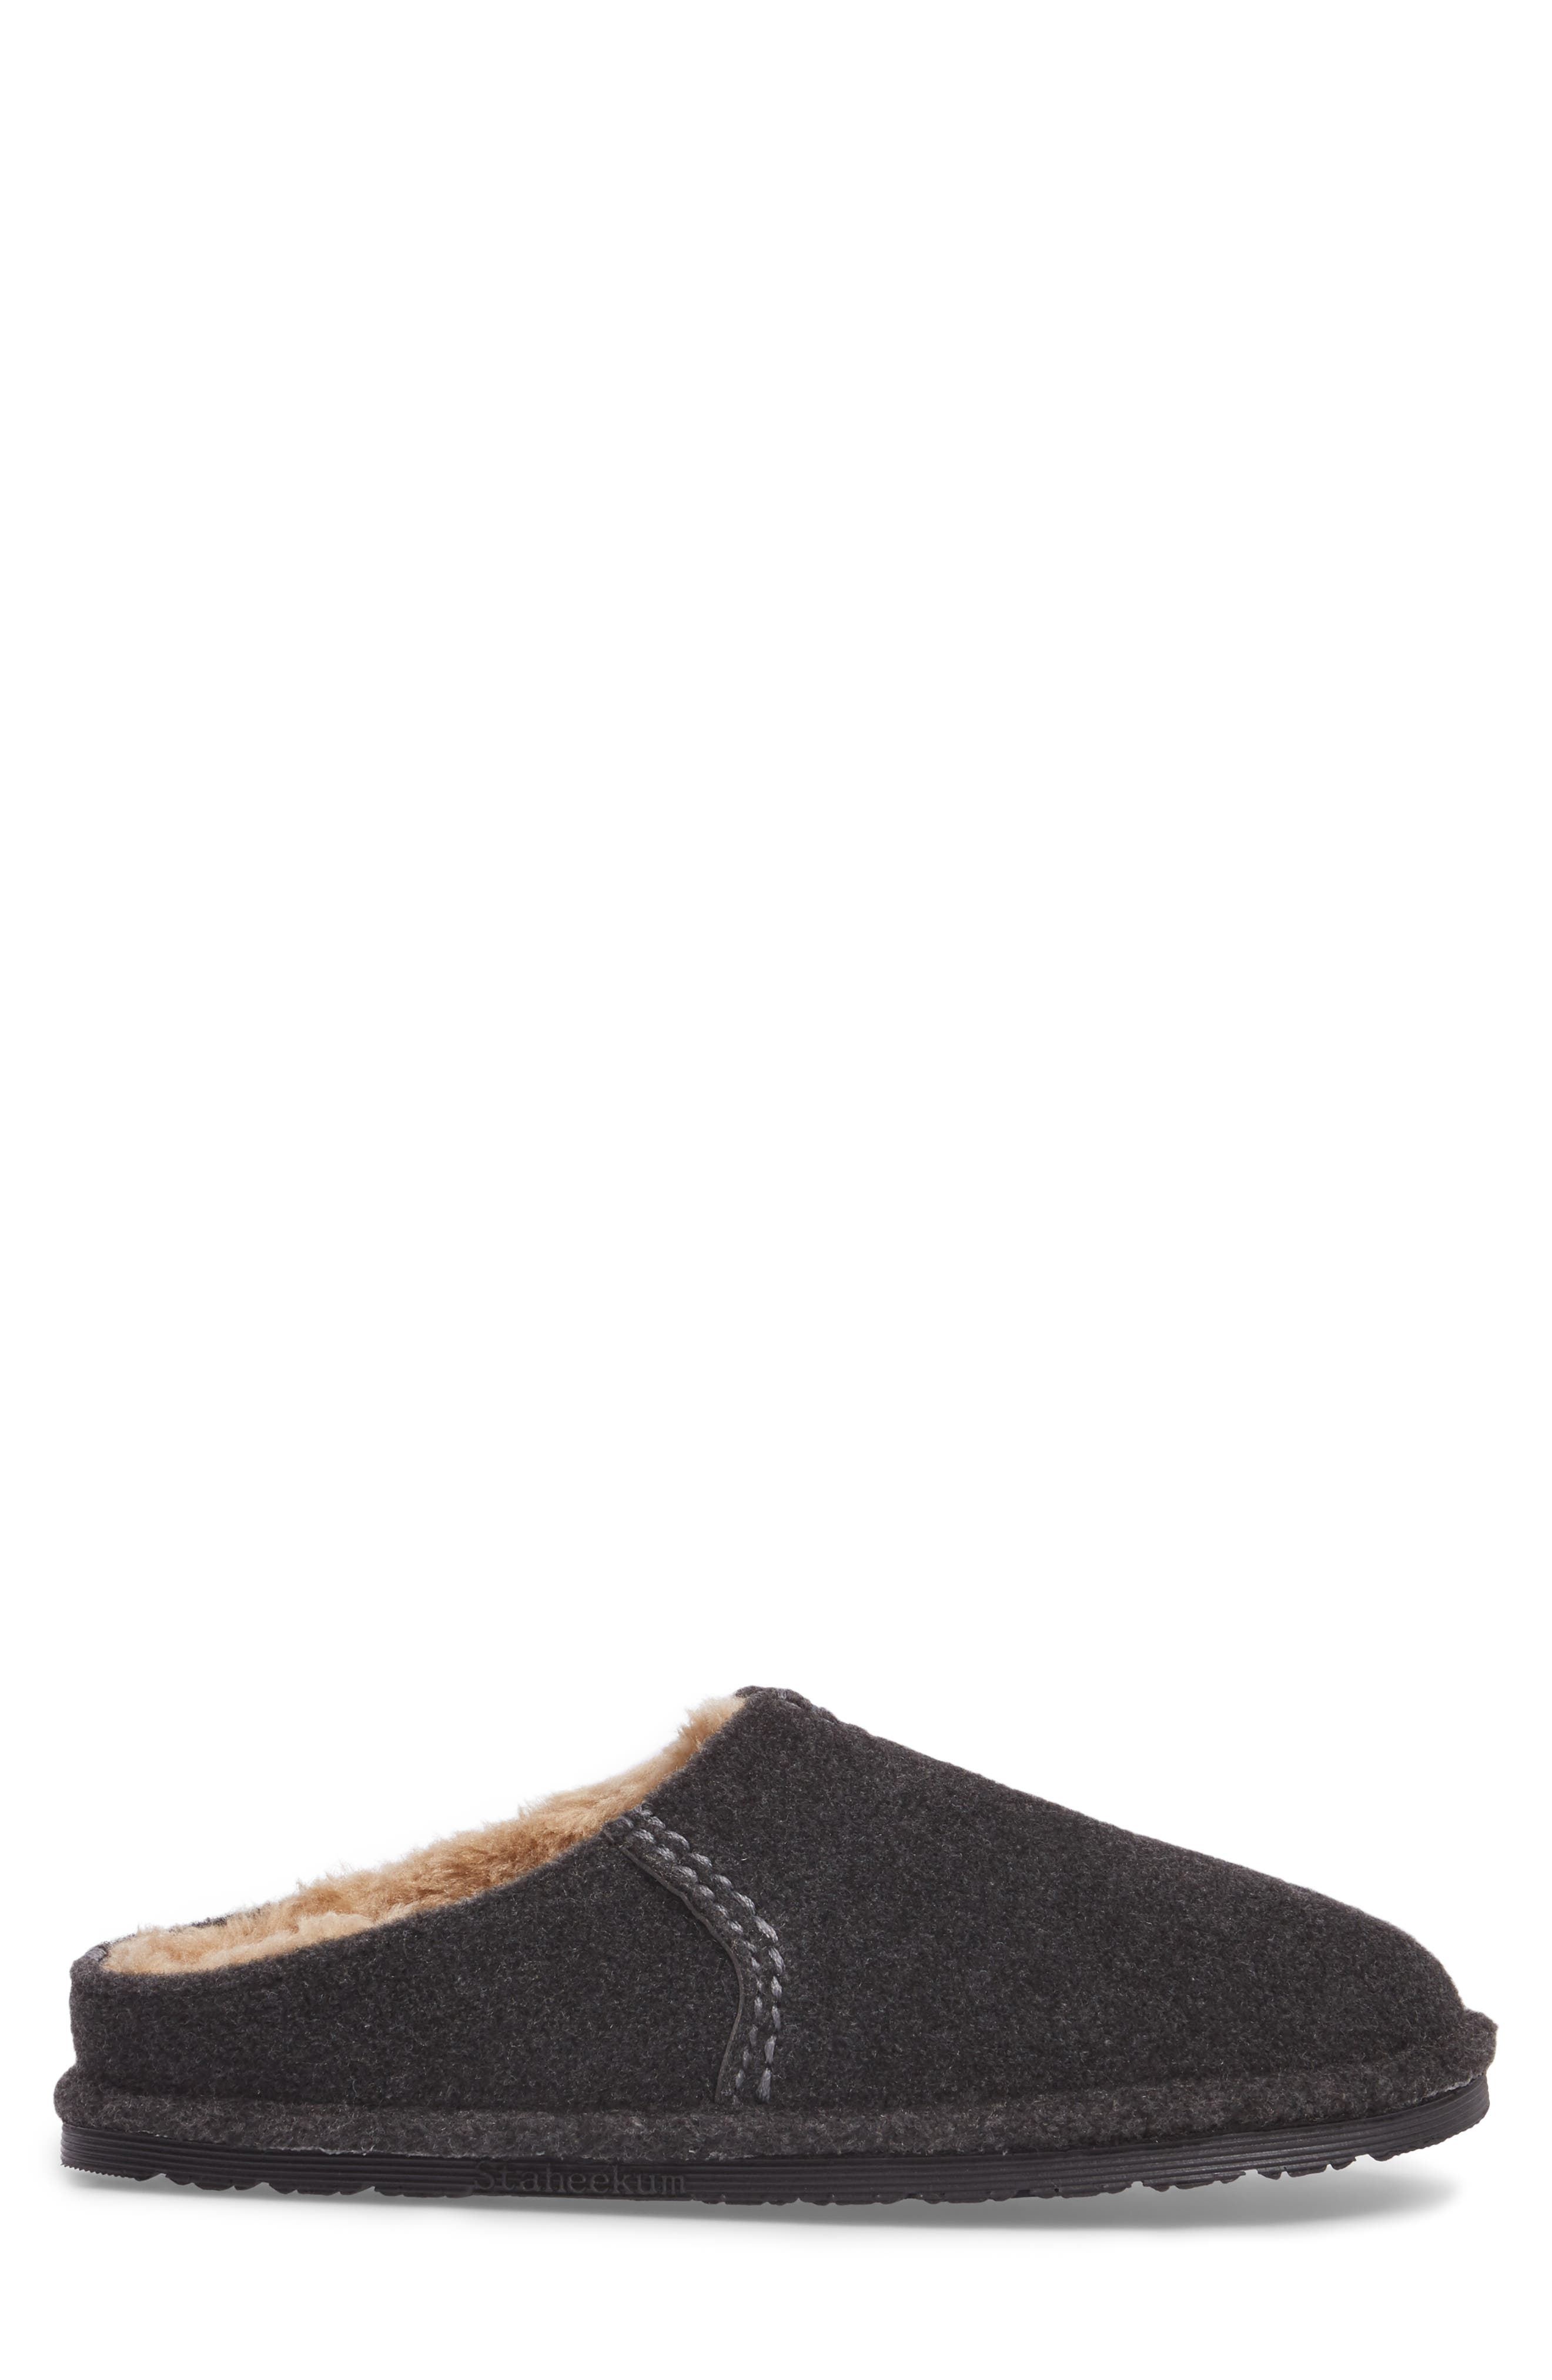 Timber Scuff Slipper,                             Alternate thumbnail 3, color,                             Charcoal Felt/ Polyester